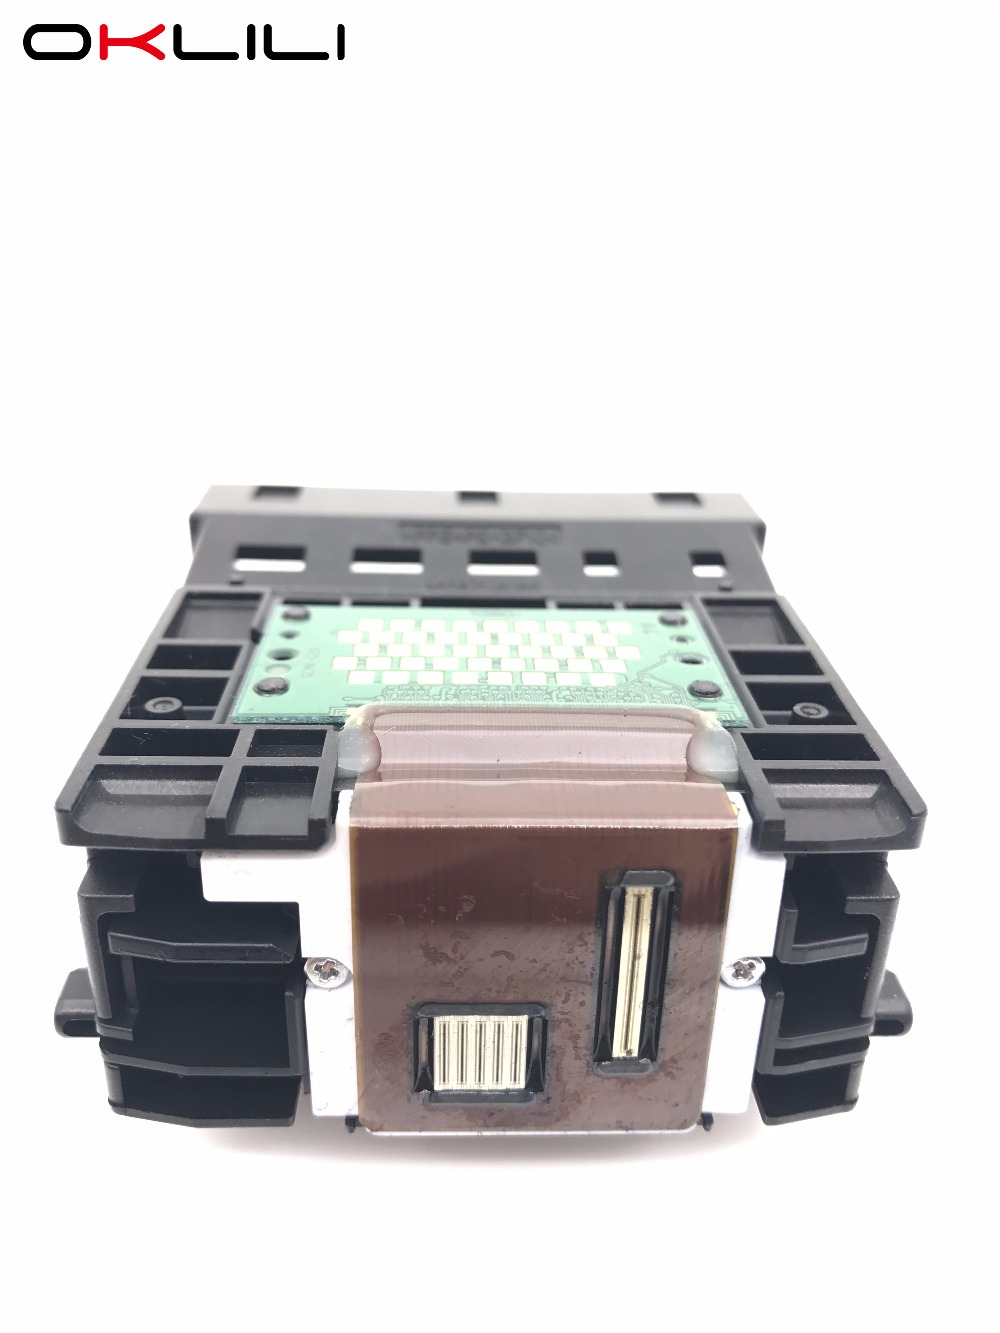 OKLILI QY6-0042 Printhead Print Head Printer Head for Canon iX4000 iX5000 iP3100 iP3000 560i 850i MP700 MP710 MP730 MP740 print head qy6 0042 printhead for canon i560 i850 ip3000 mp730 ix5000